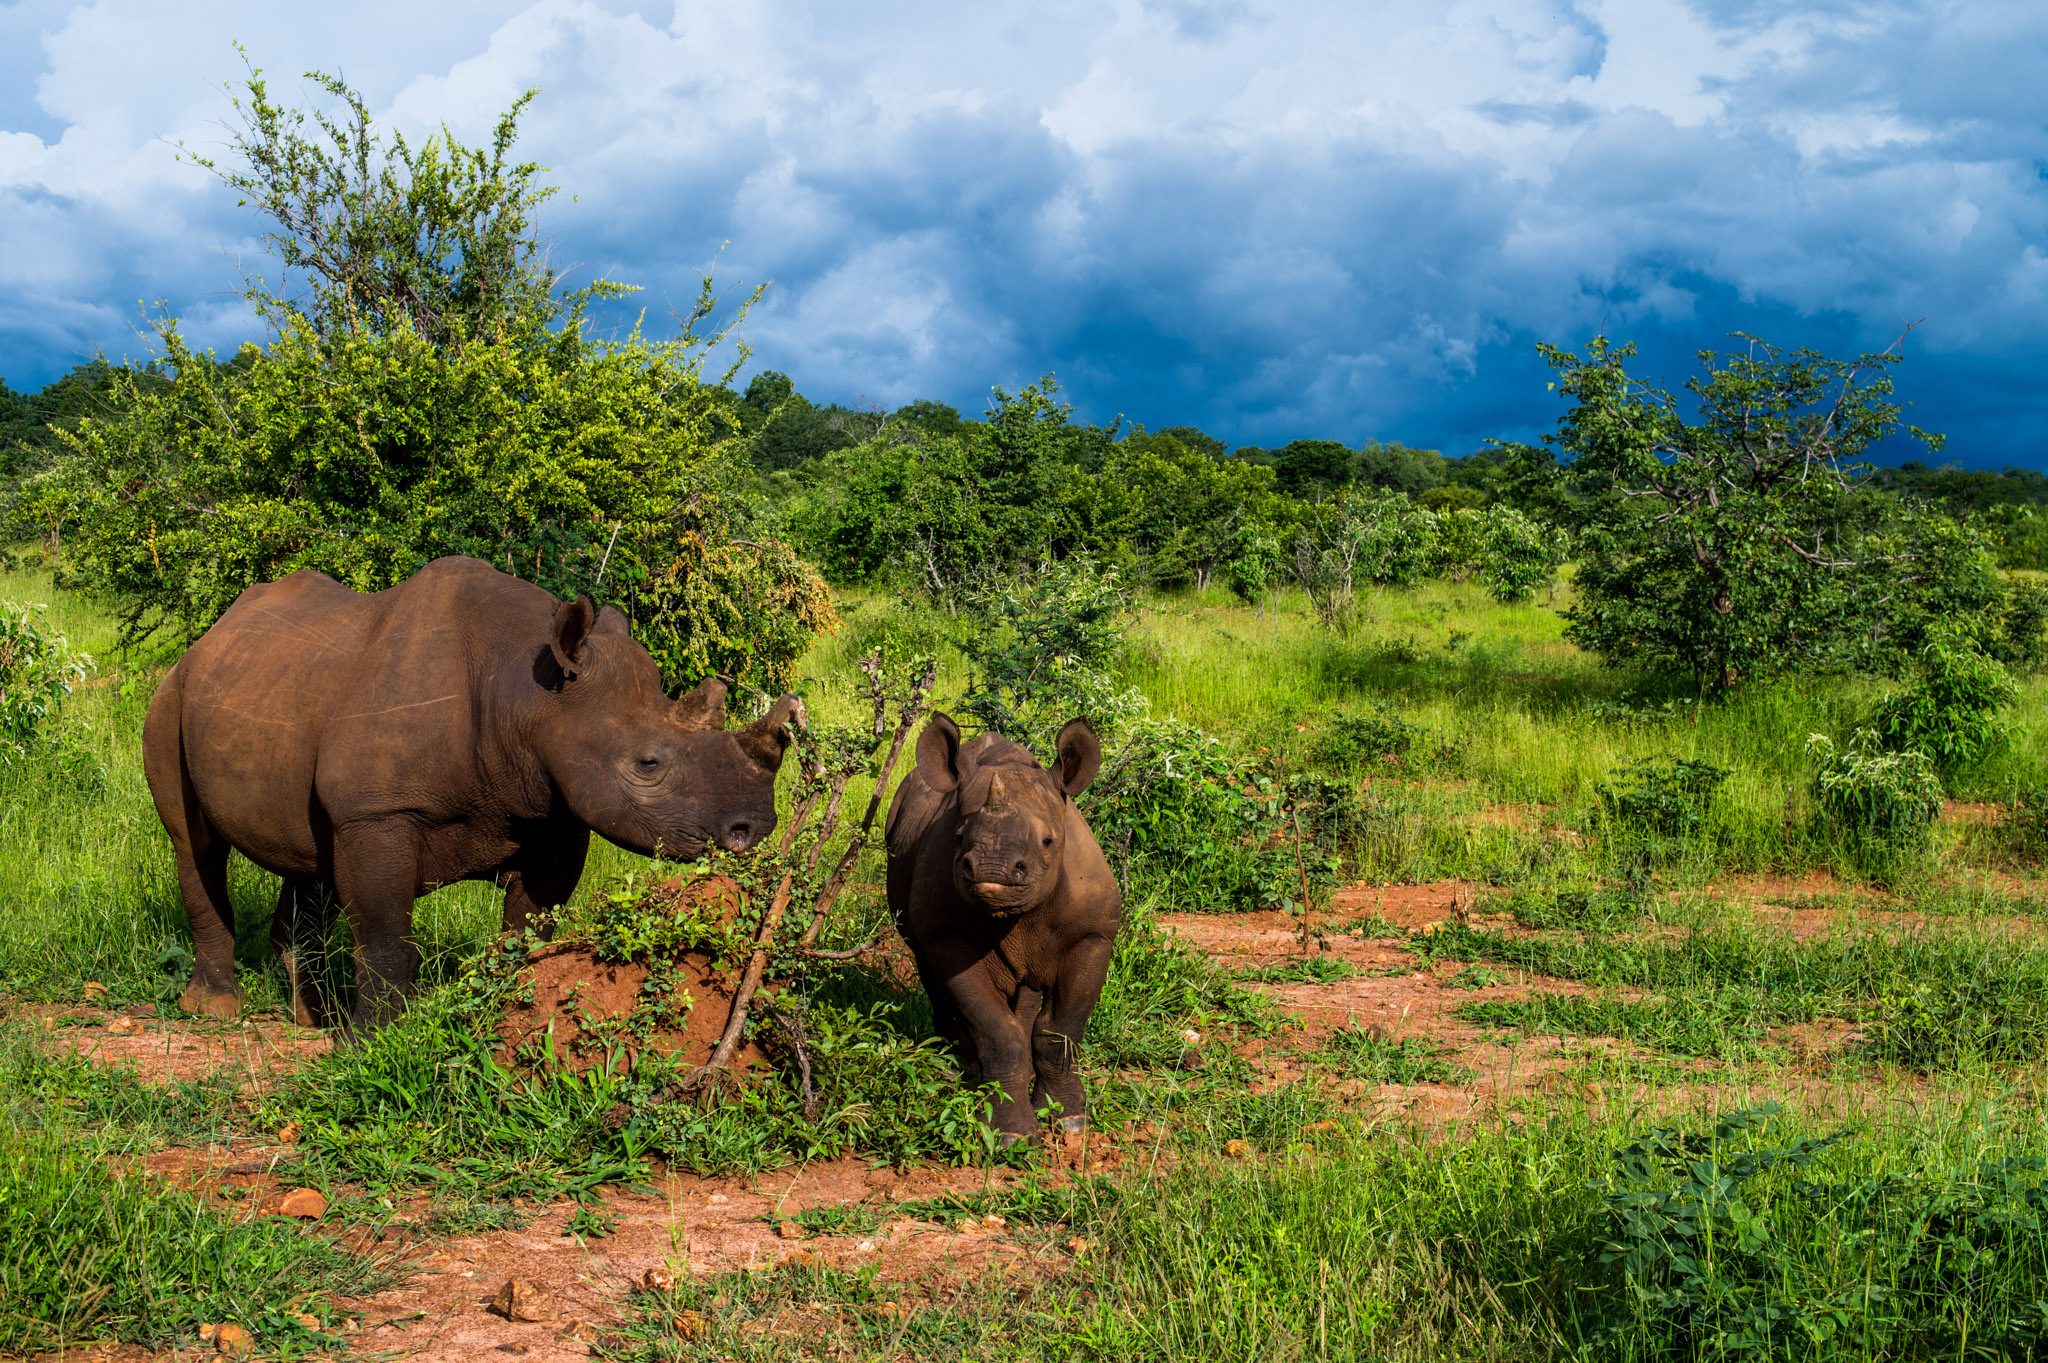 A female black rhino and her calf in the Stanley and Livingstone Game Reserve, Zimbabwe—Photograph by Michael Hathorn, Ginkgo Agency